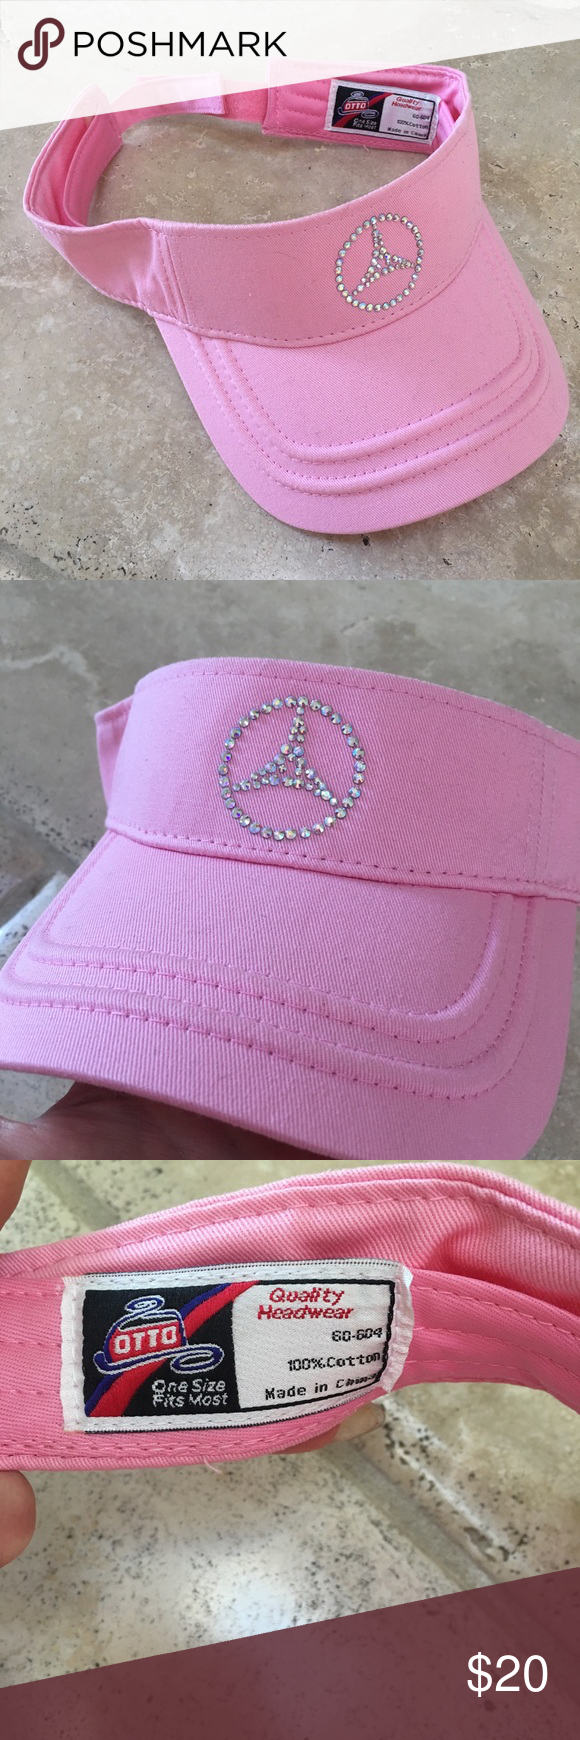 df6a76b7ae0 Pink bling new Mercedes Benz Visor hat logo golf Mercedes Benz pink bling  logo visor hat ✨ new never used ✨ adjustable velcro back ✨ 100% cotton ✨  great ...